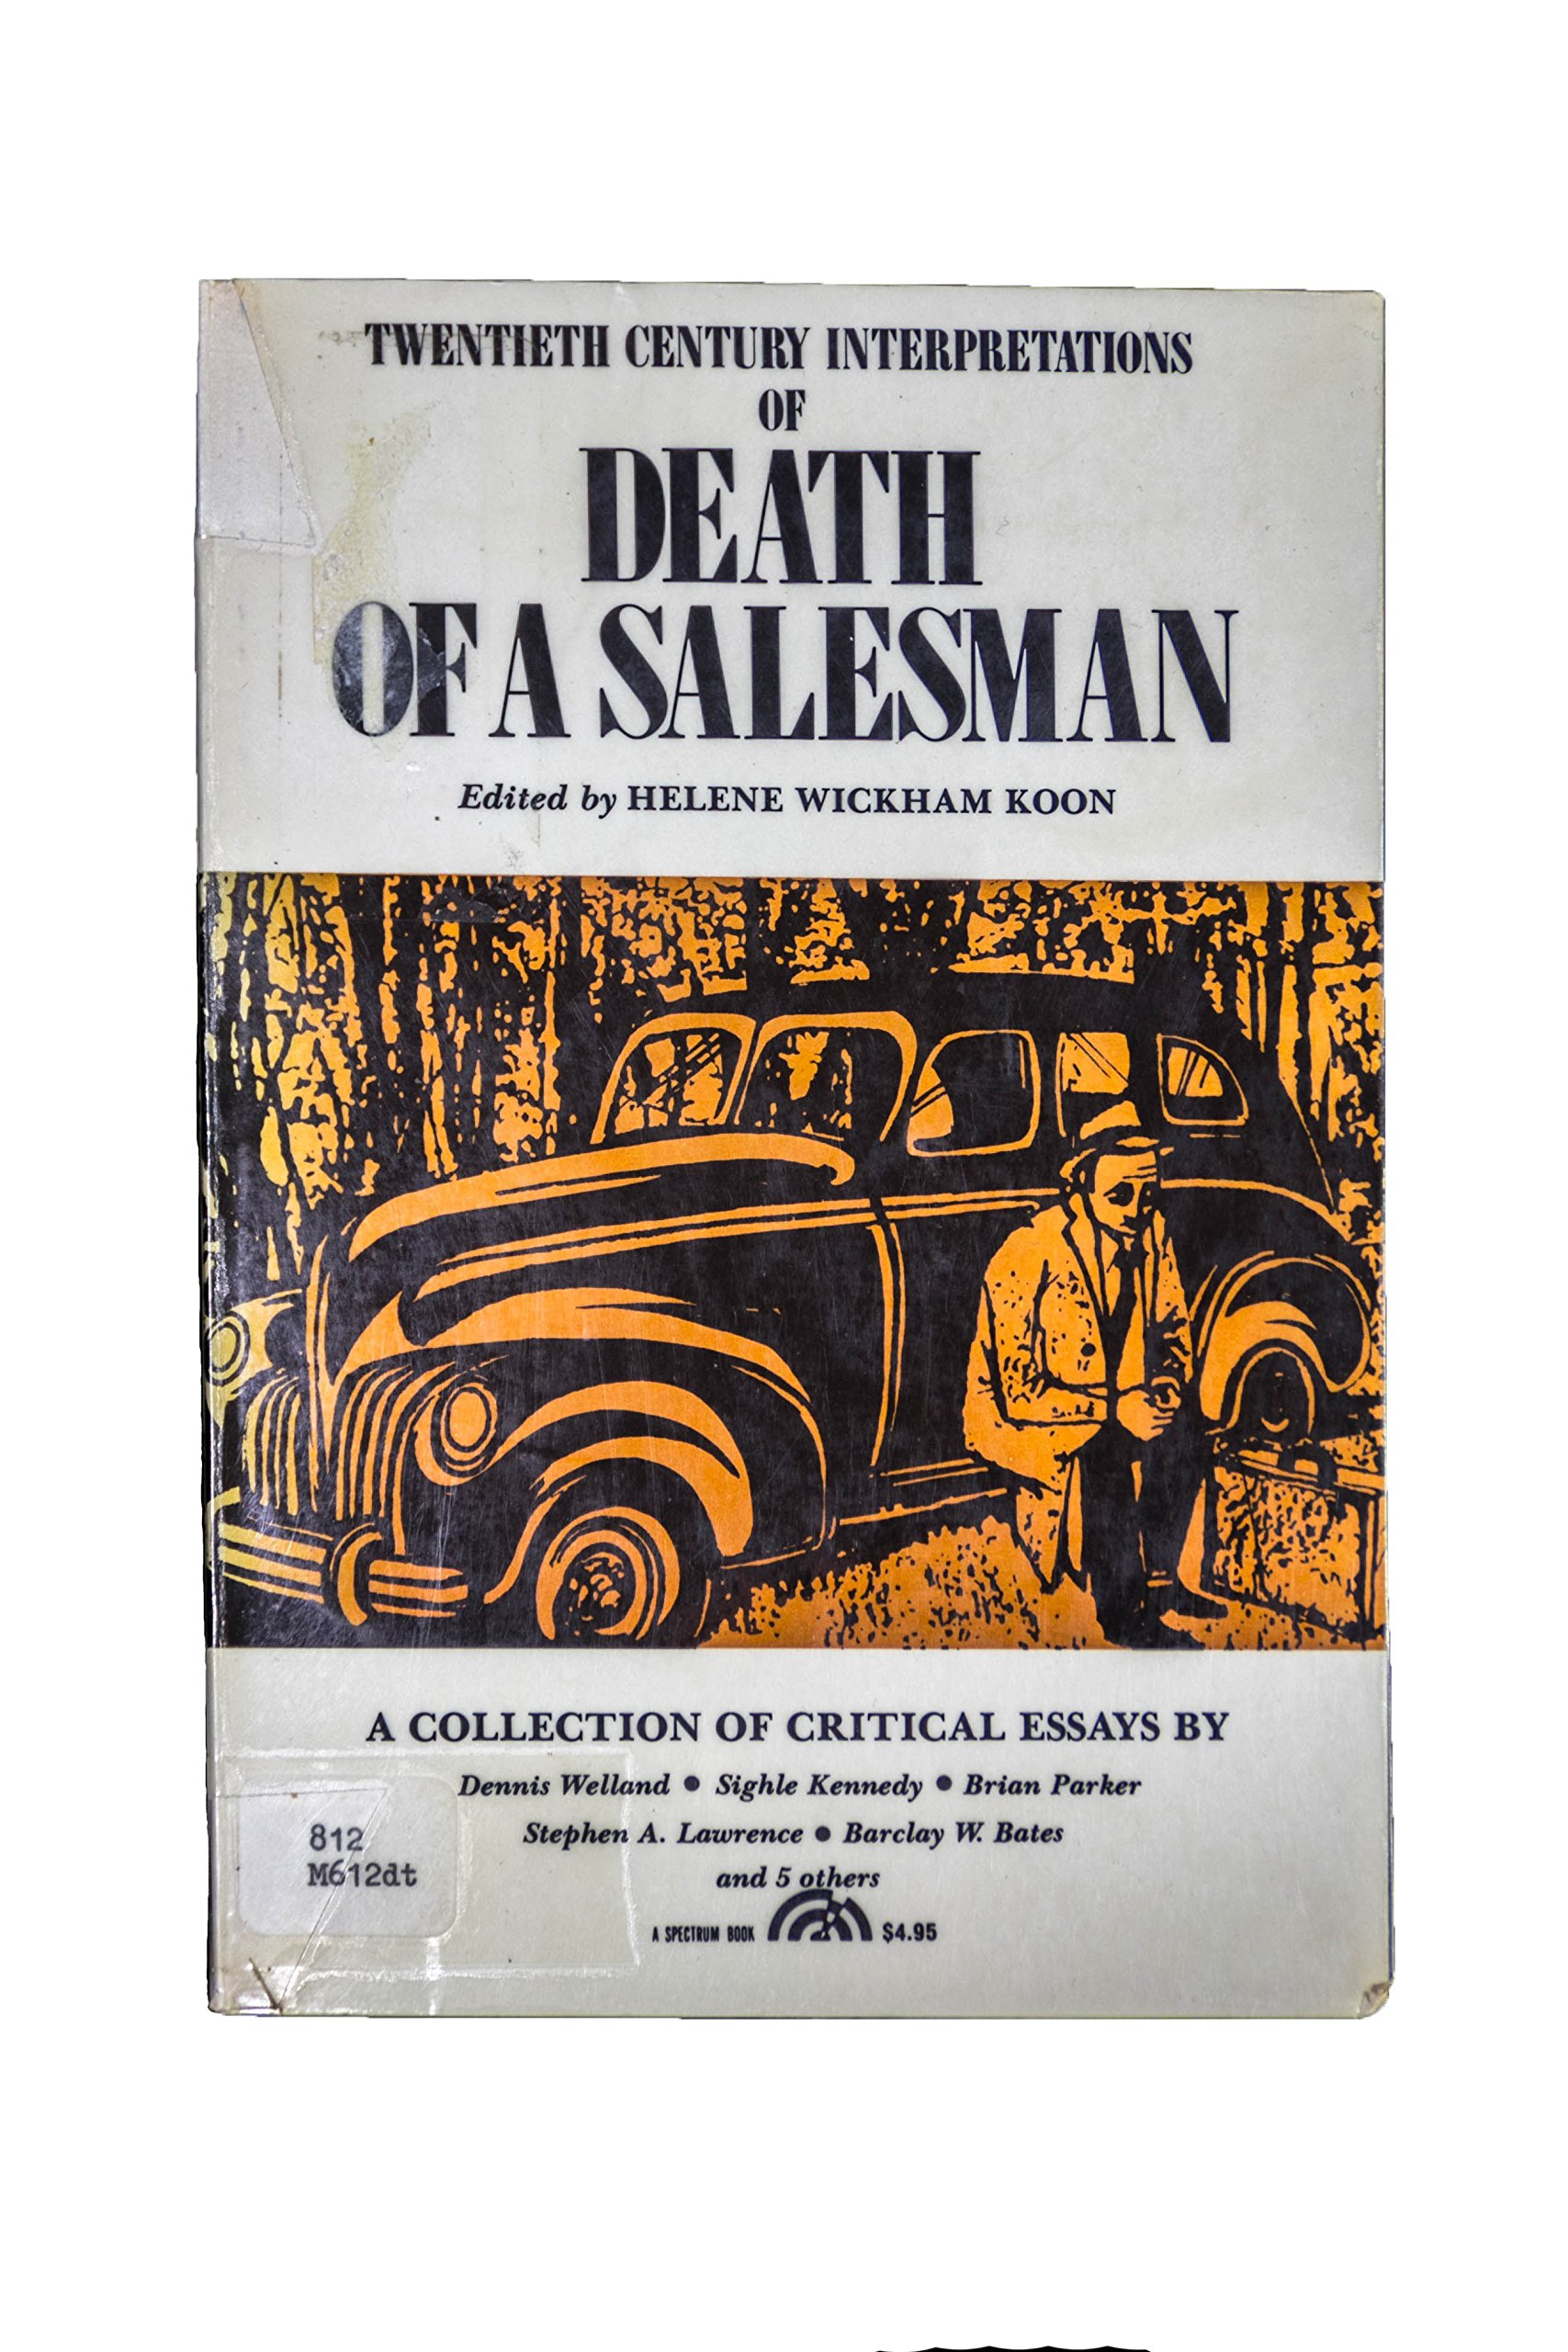 Death Of A Salesman A Collection Of Critical Essays Th Century  Death Of A Salesman A Collection Of Critical Essays Th Century  Interpretations Helene Wickham Koon  Amazoncom Books